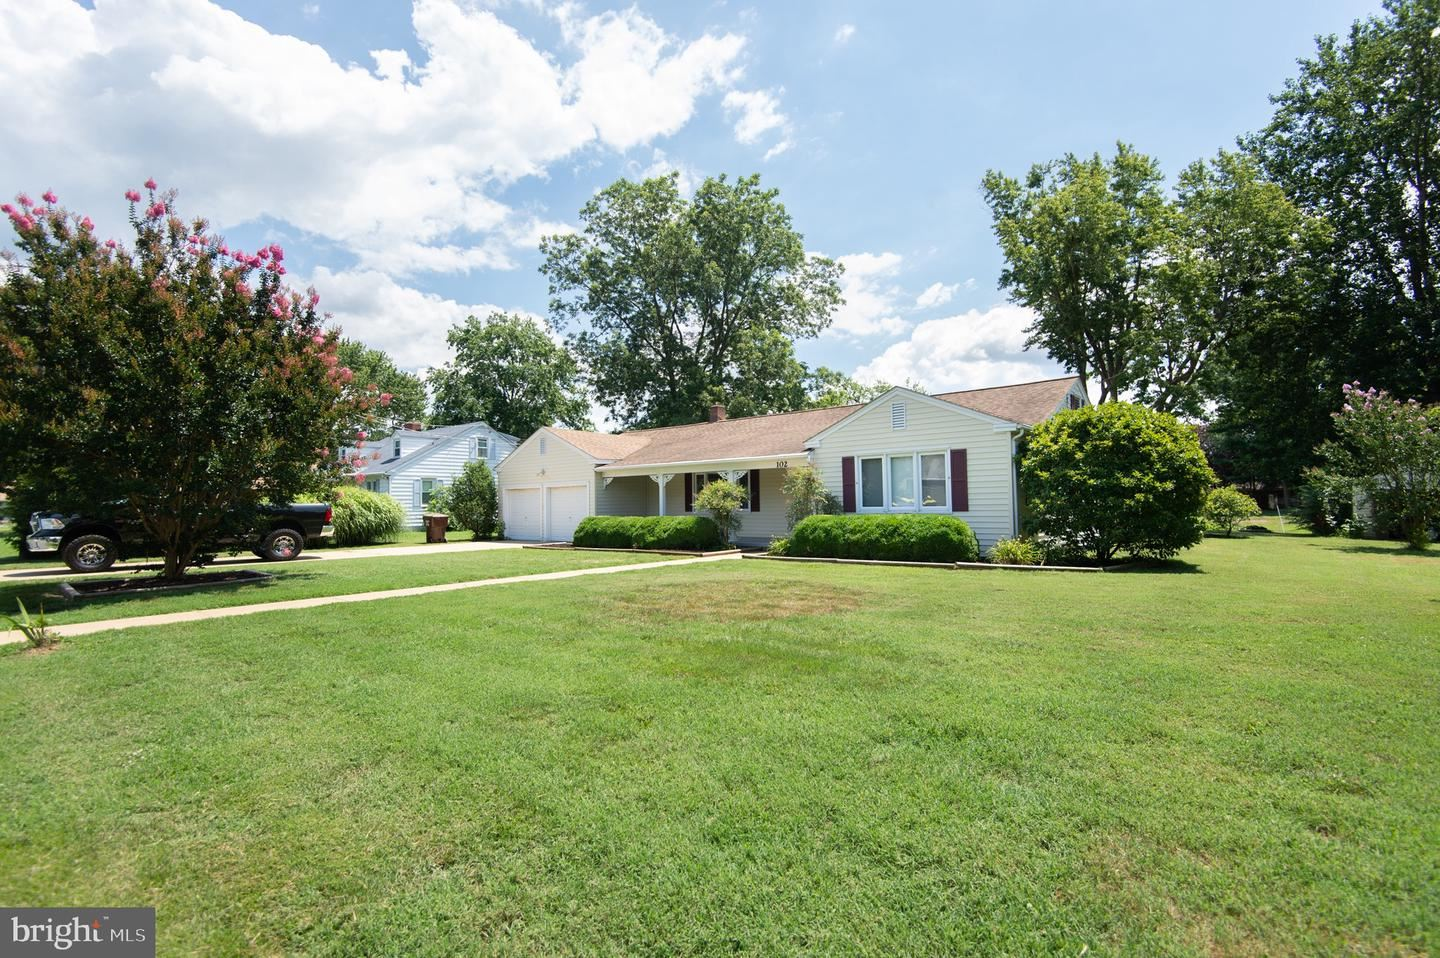 Photo of 102 LEE DR, CAMBRIDGE, MD 21613 (MLS # MDDO125710)